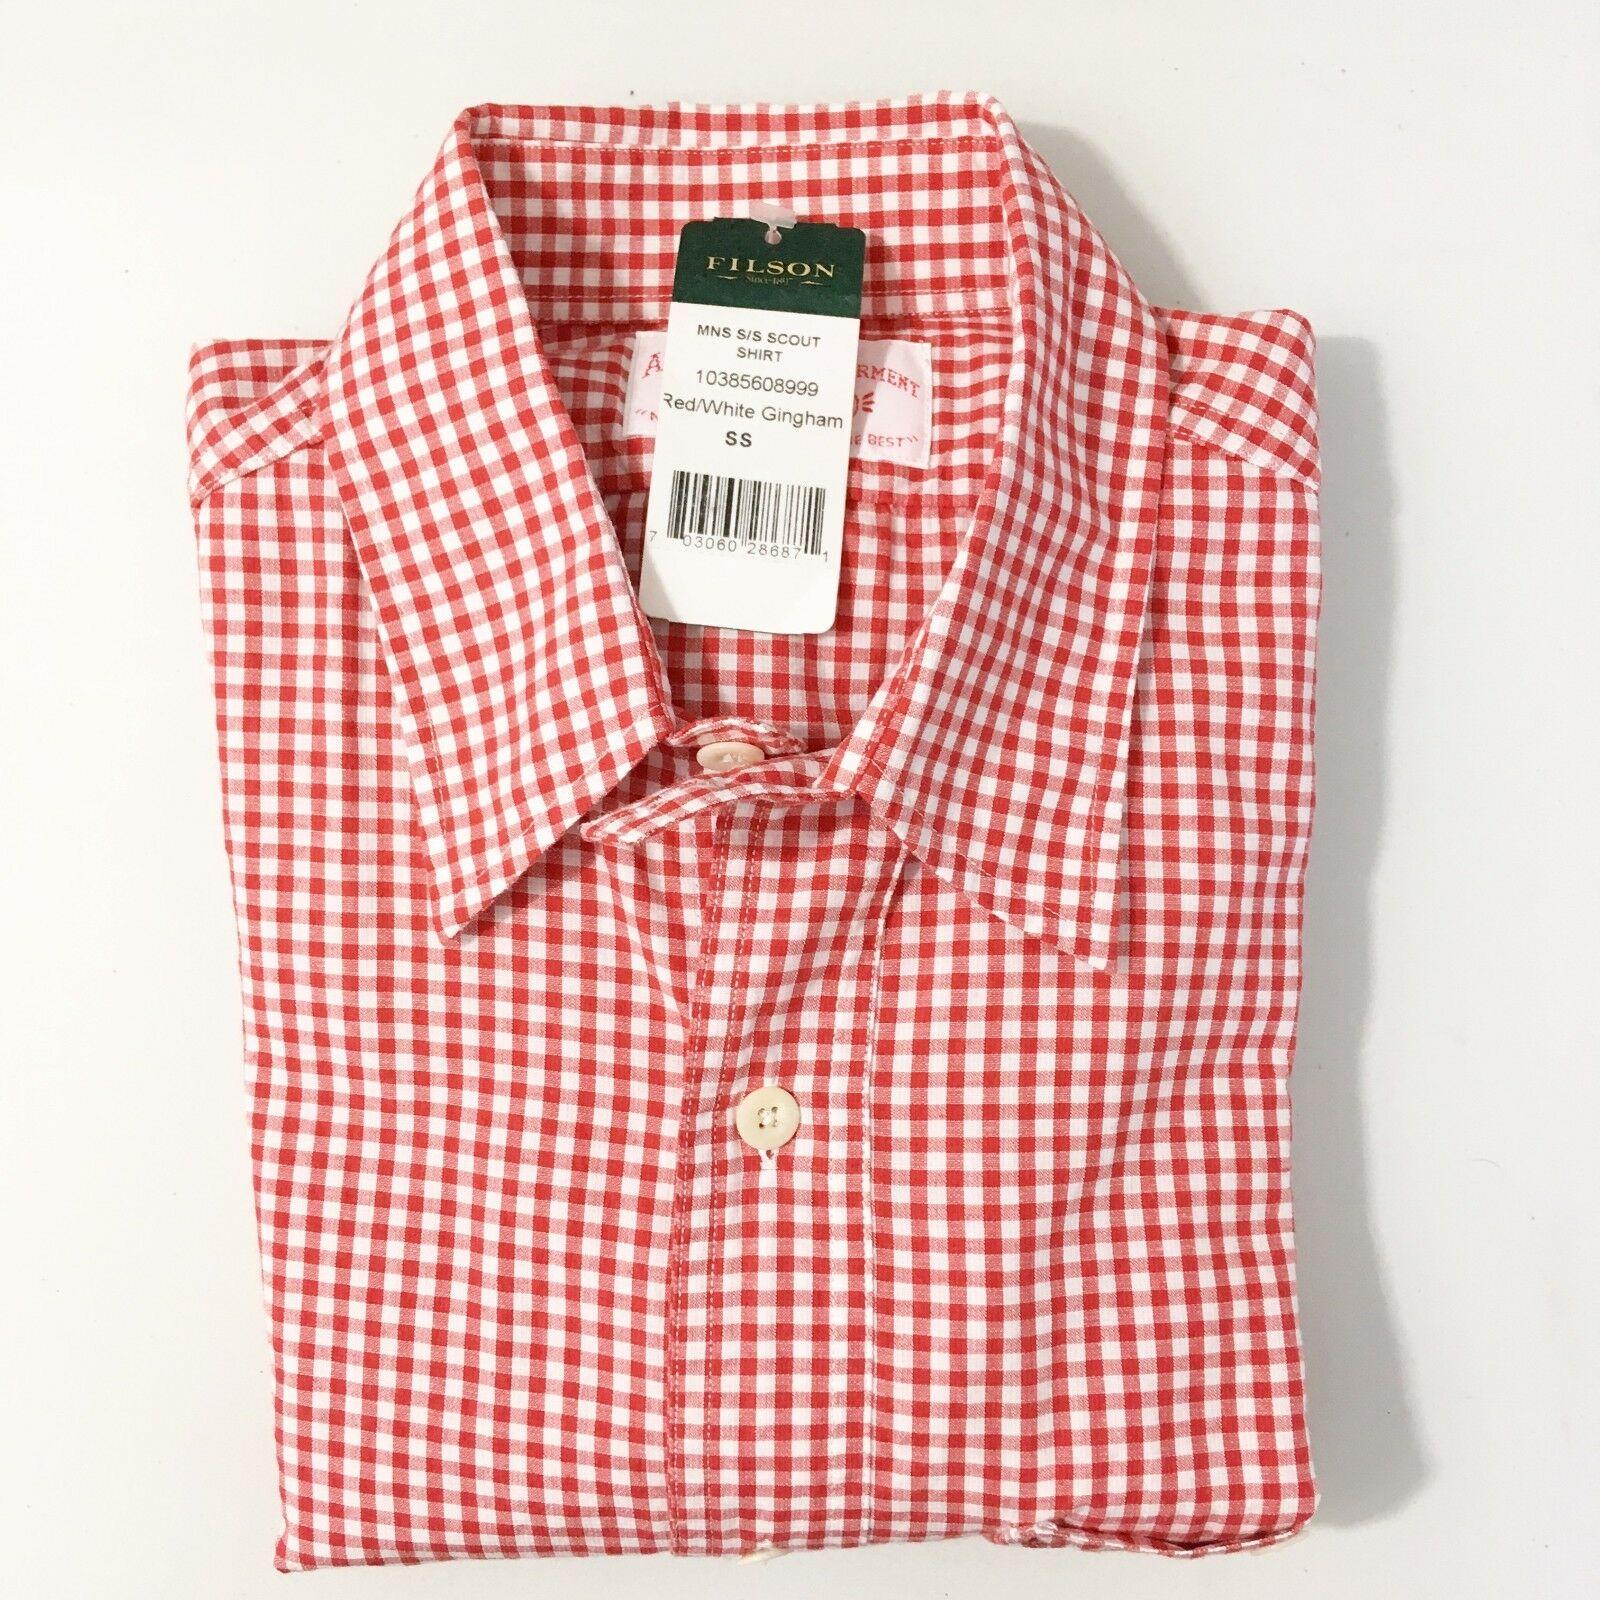 NWT CC Filson Mens Sz S Scout Shirt Red White Gingham Short Sleeve Camp